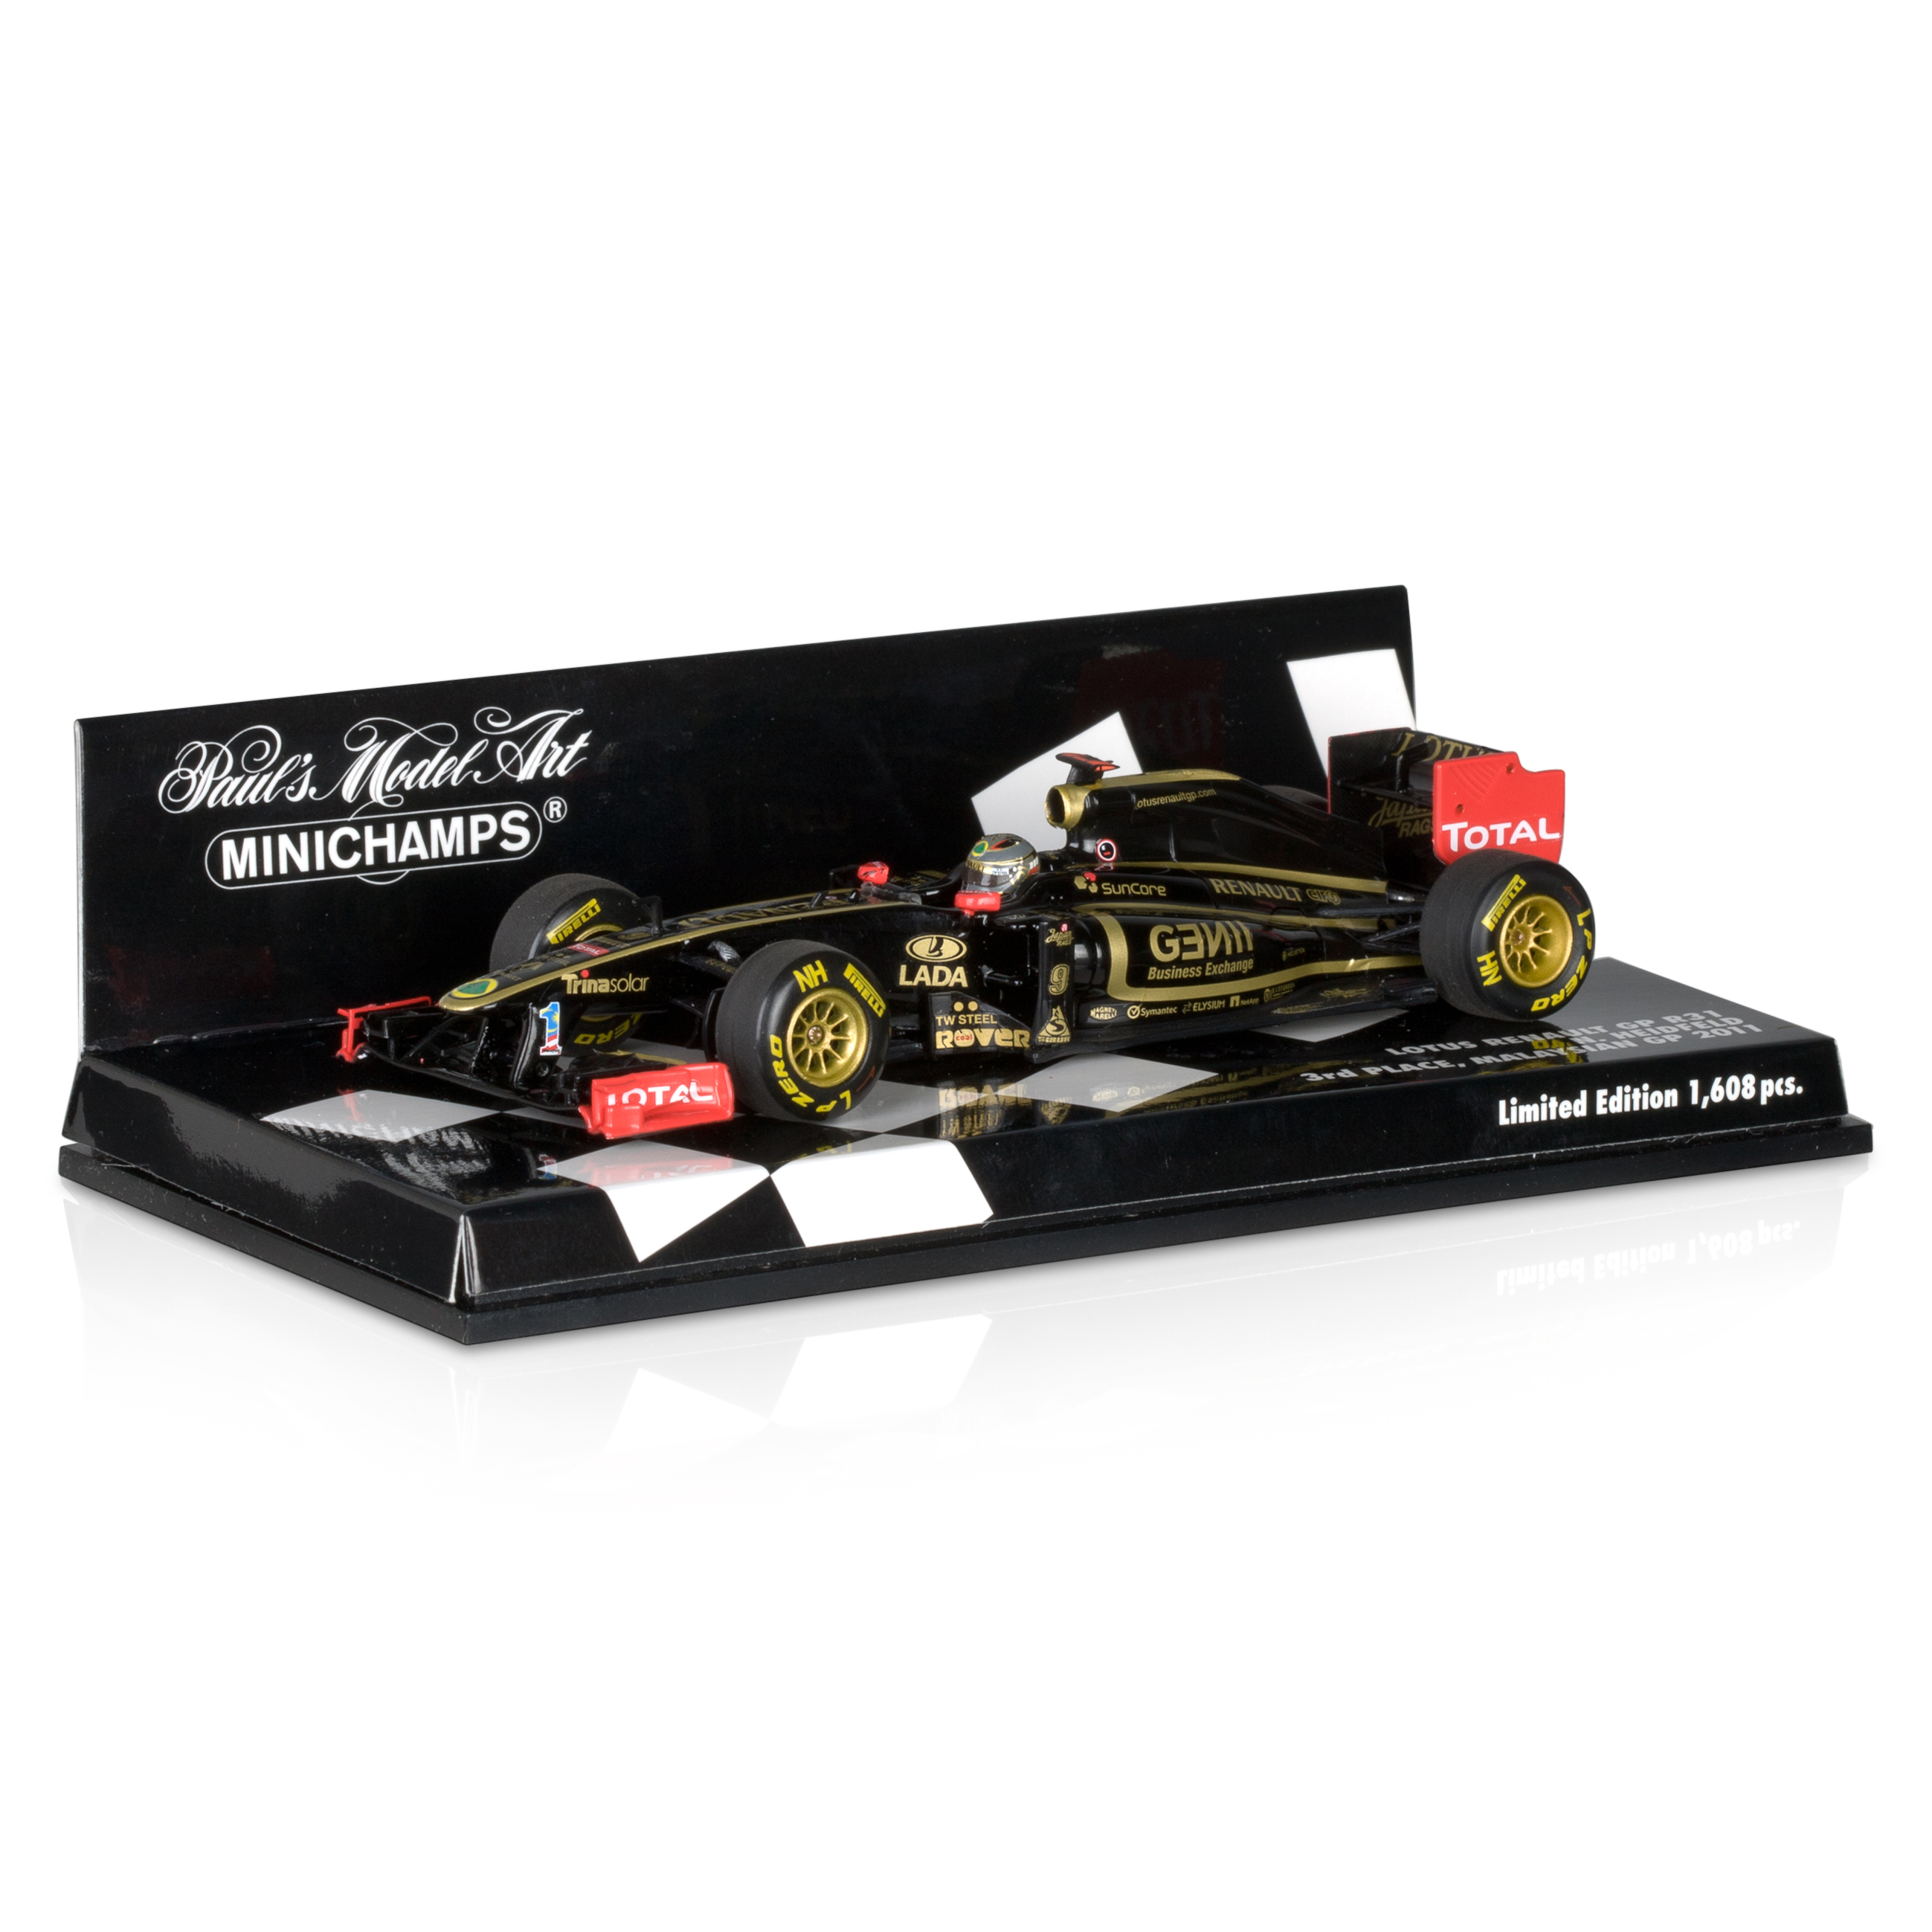 Lotus Renault GP R31 Nick Heidfeld 1:43 Scale